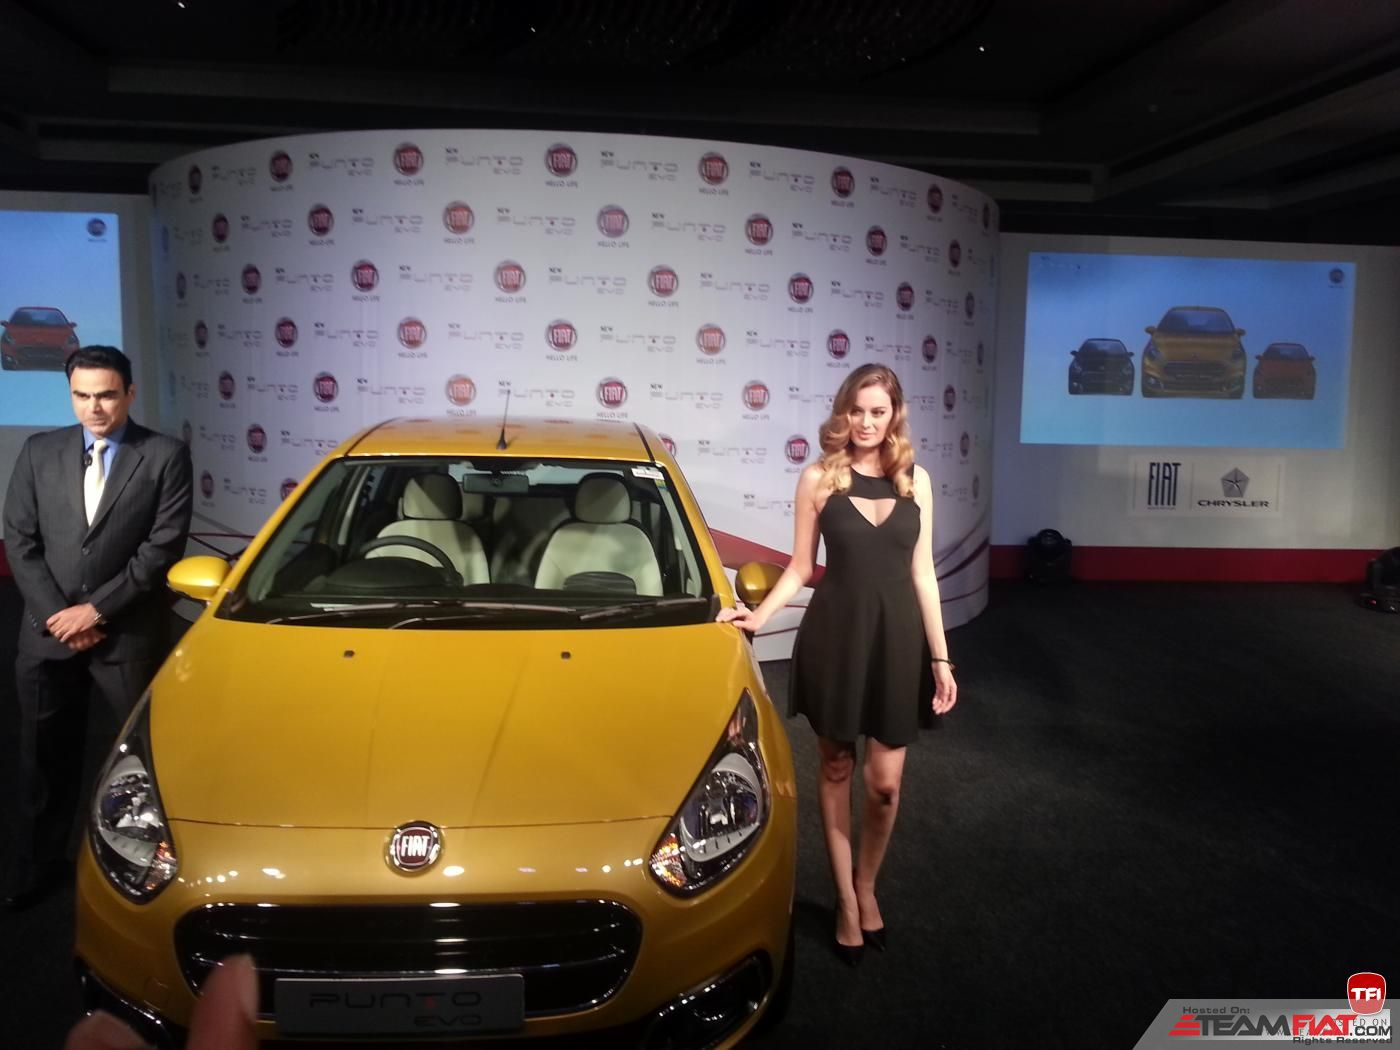 66271d1407267955-fiat-punto-evo-launch-5th-august-2014-20140805_124906.jpg